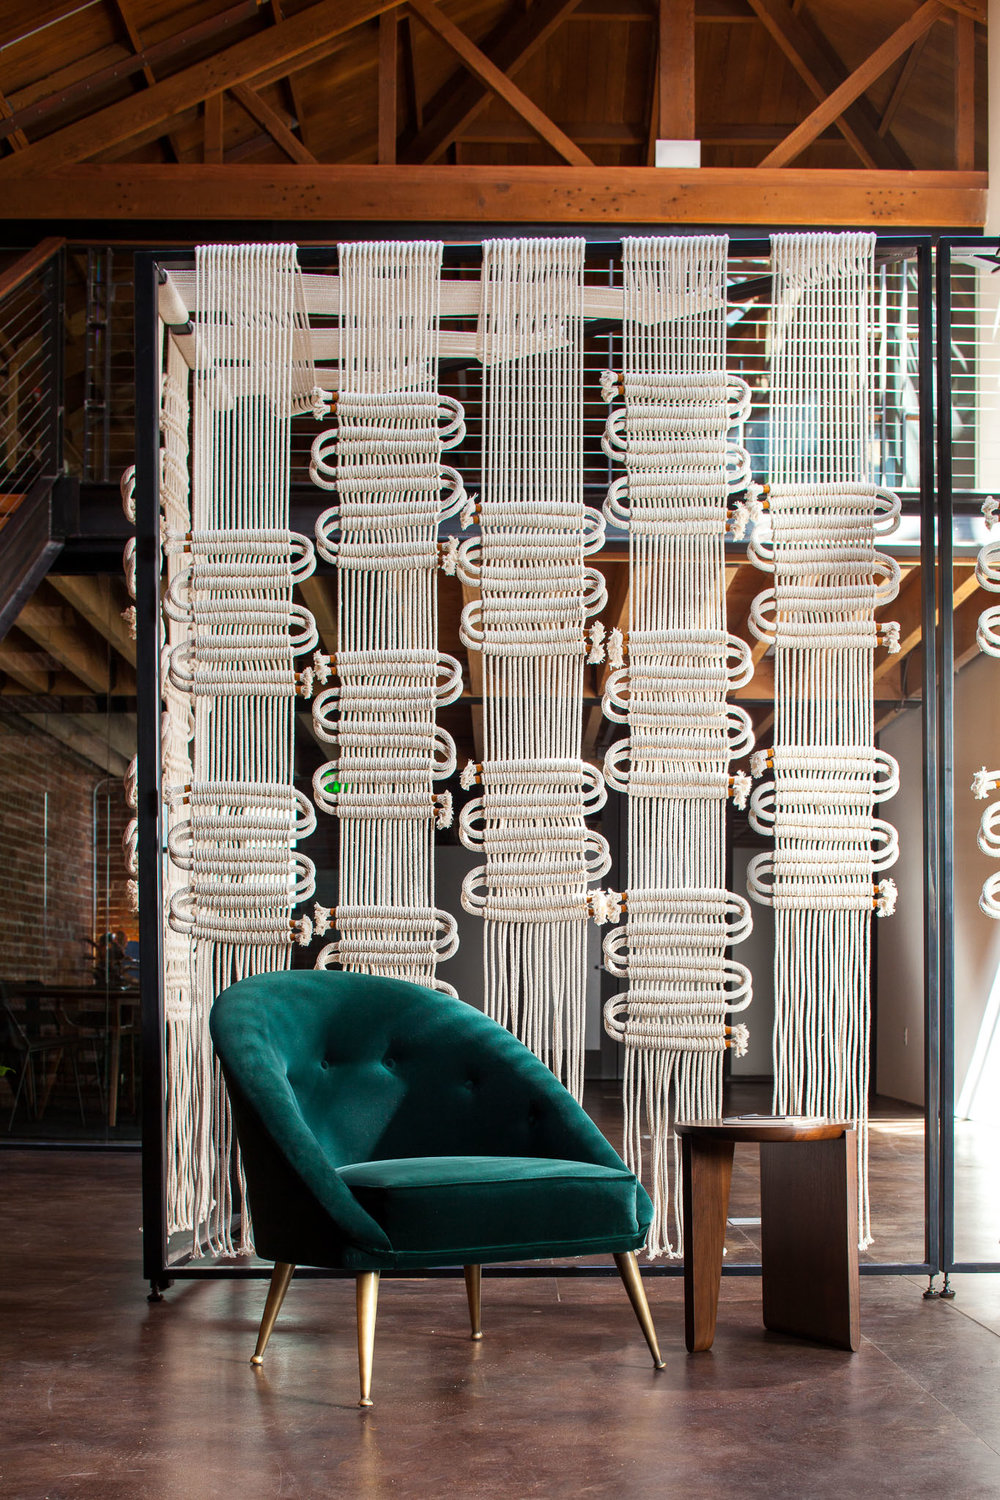 Circuit Board canopied frameworks by Windy Chien http://windychien.com